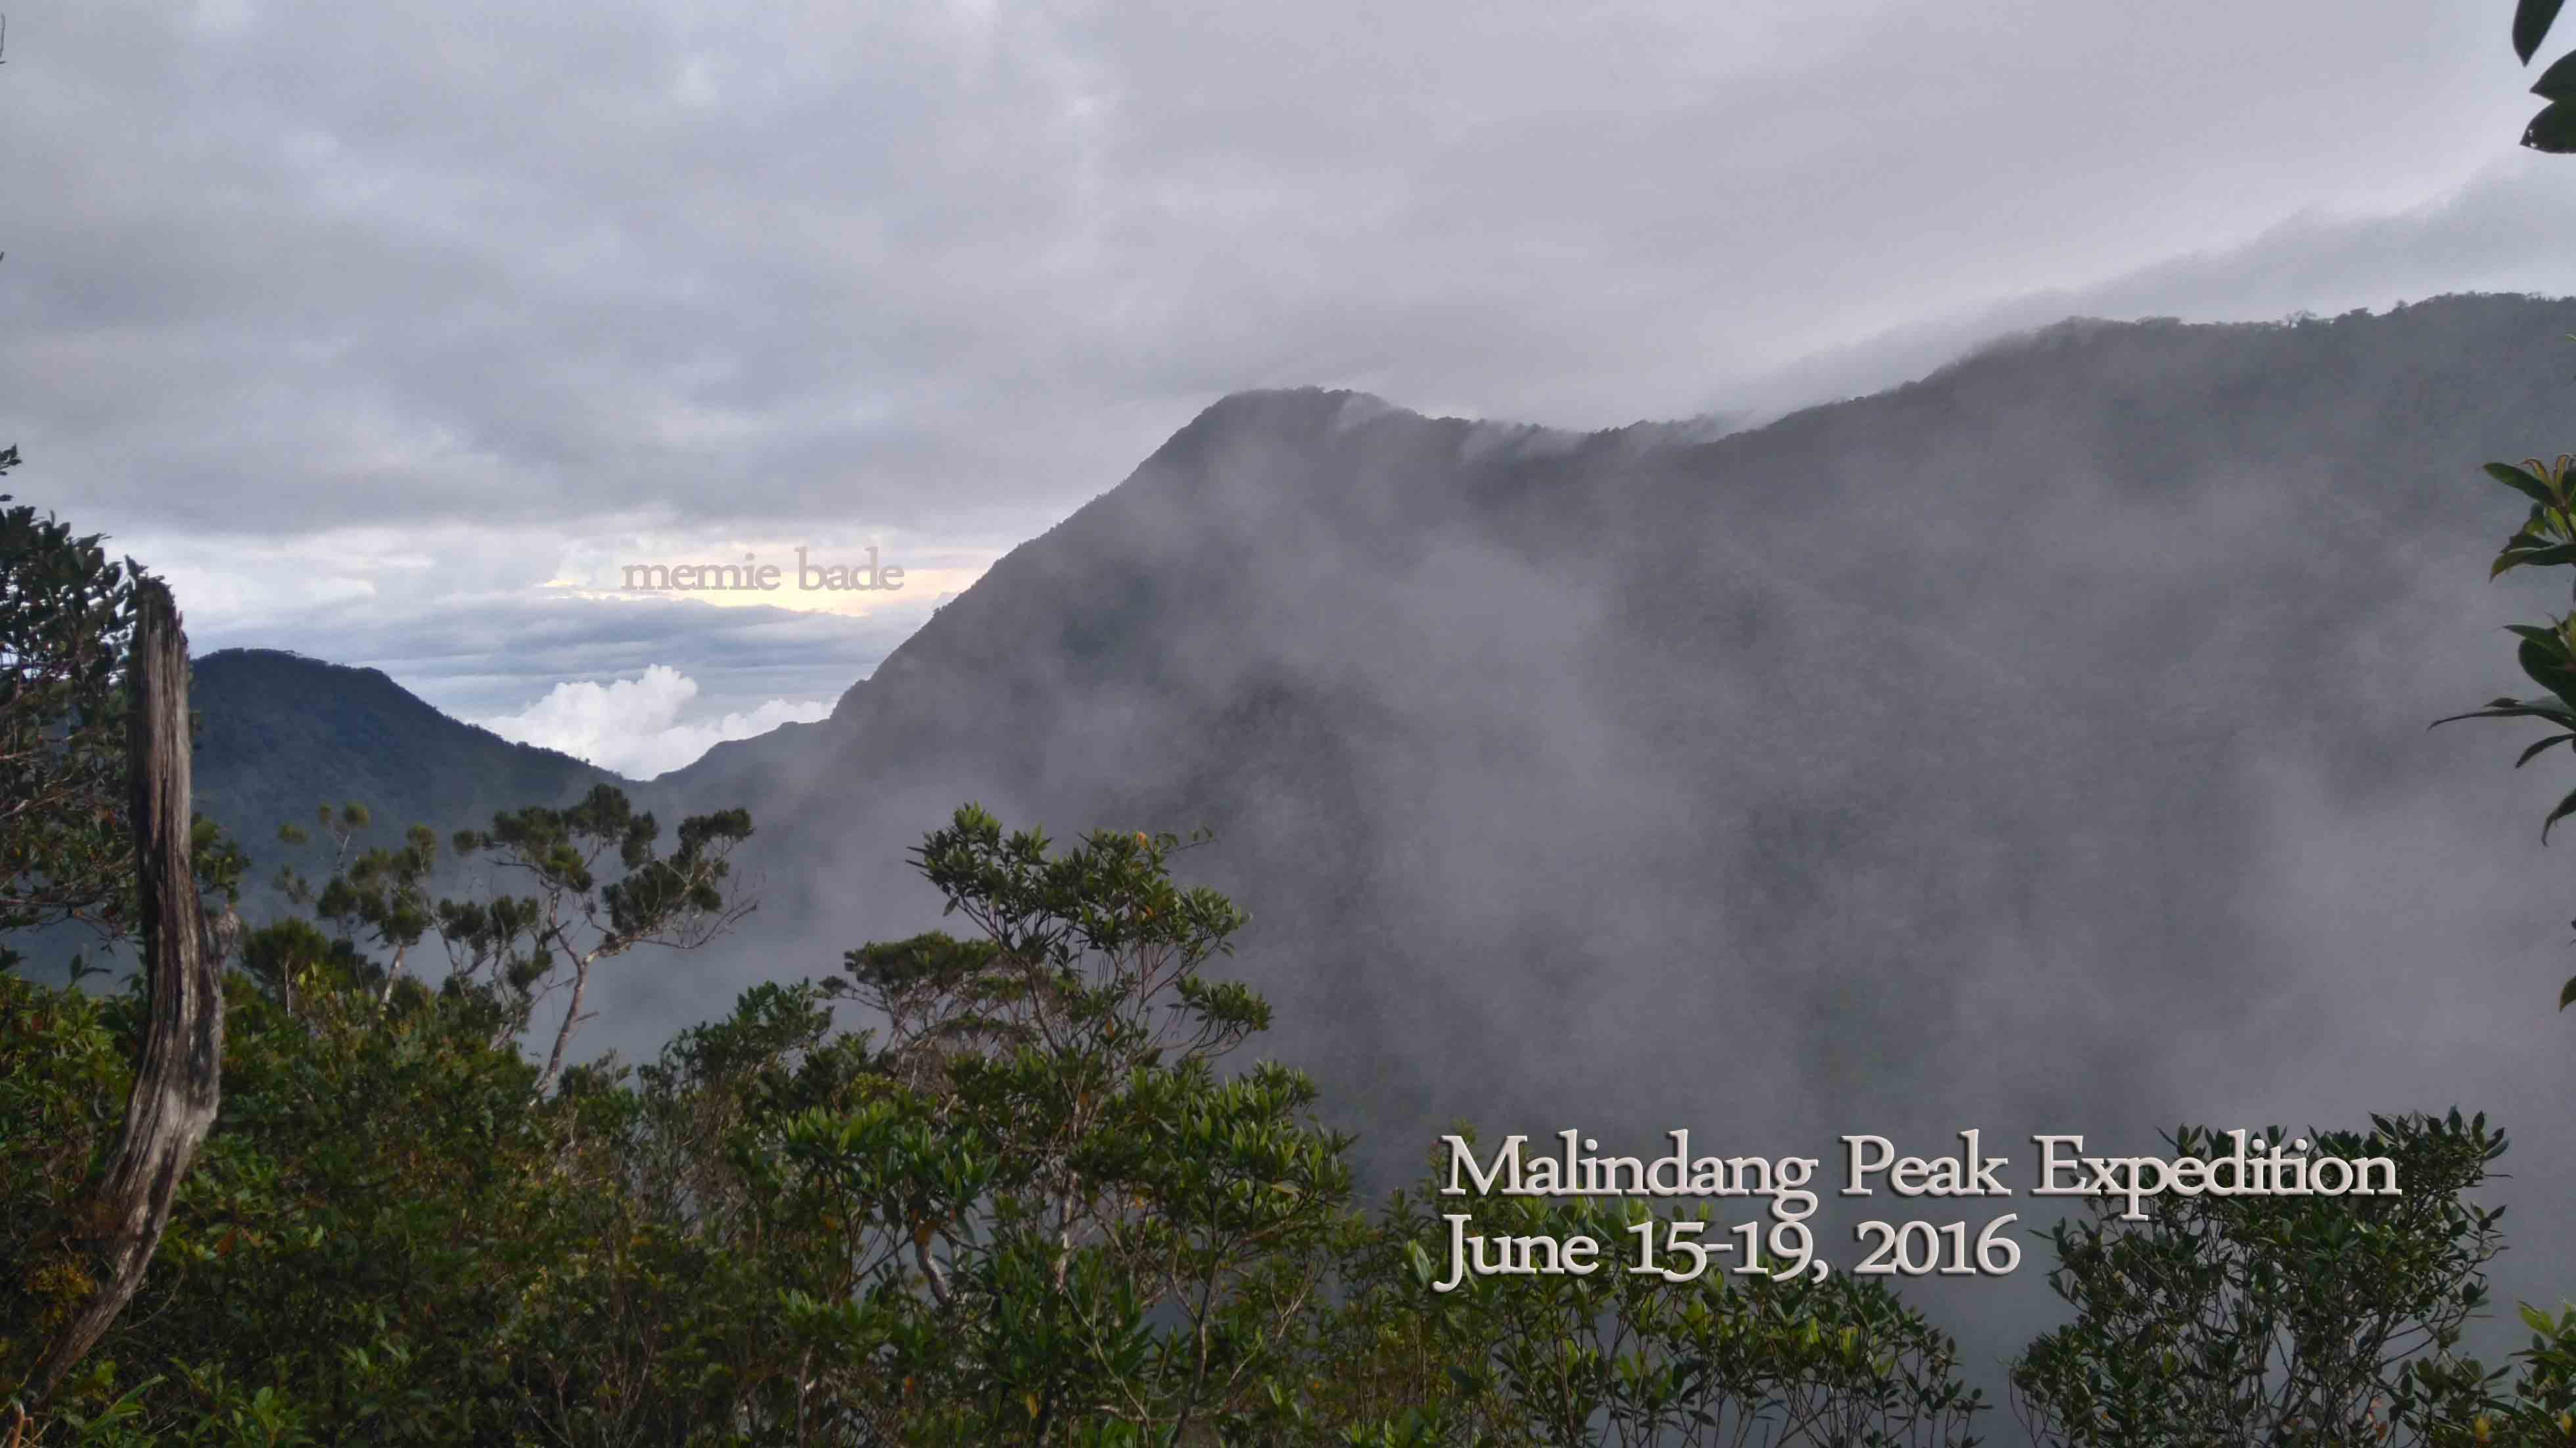 thephotos/2016/malindang peak expedition/DSC_1940.jpg